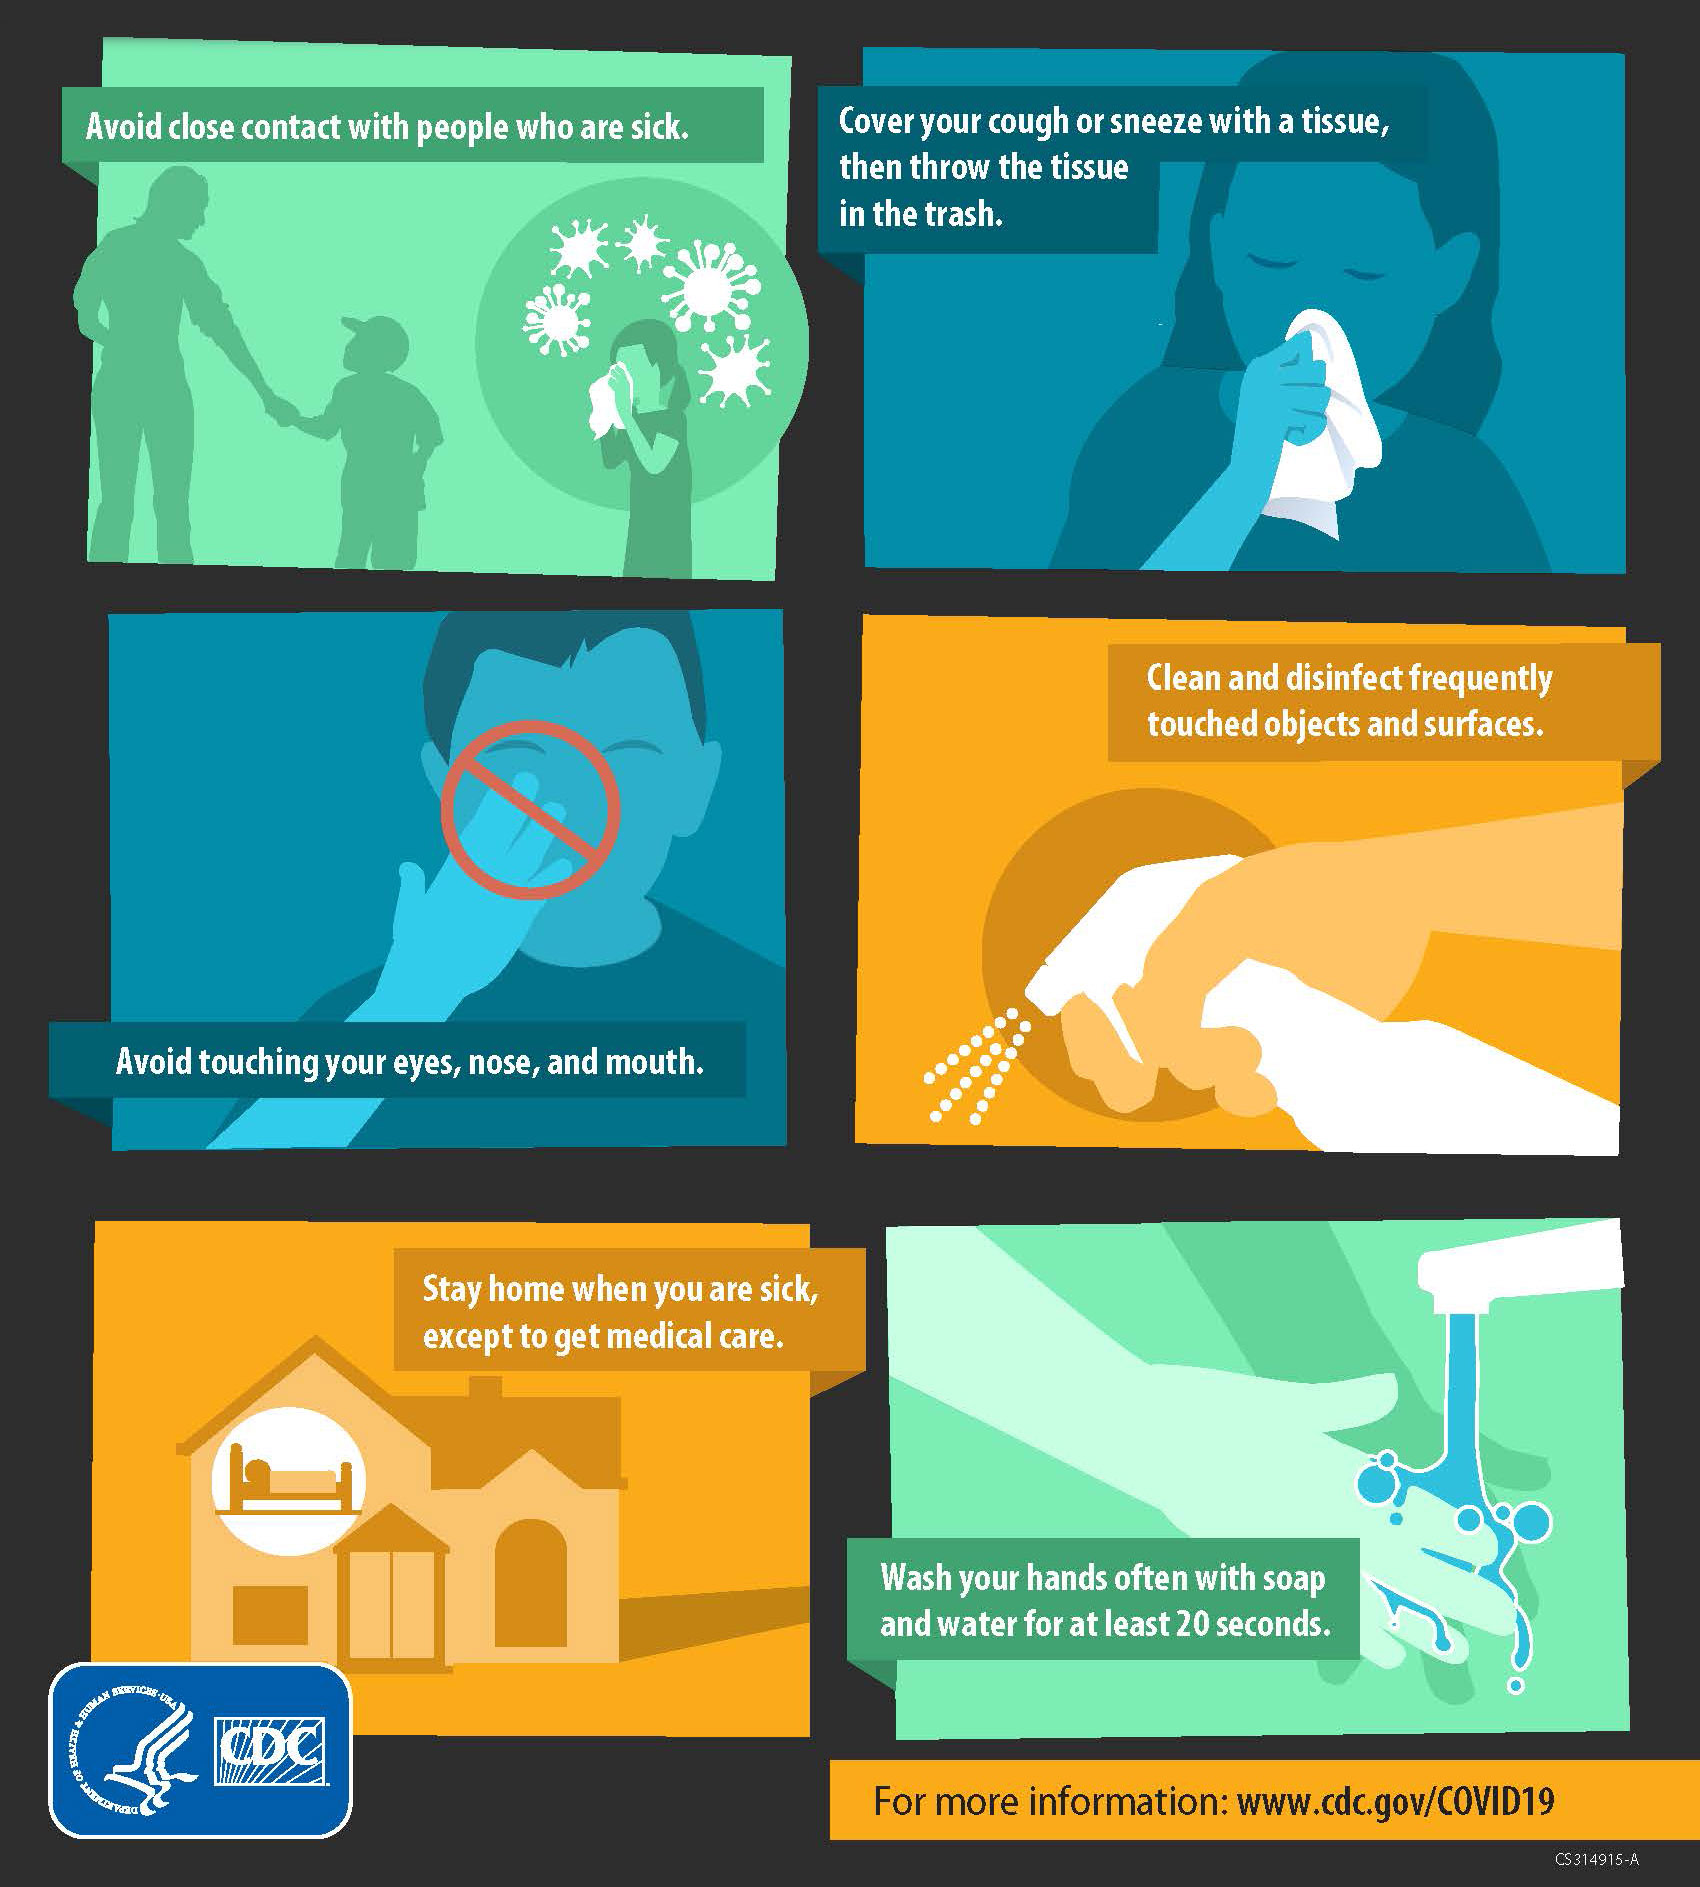 cdc-stop-spread-infographic